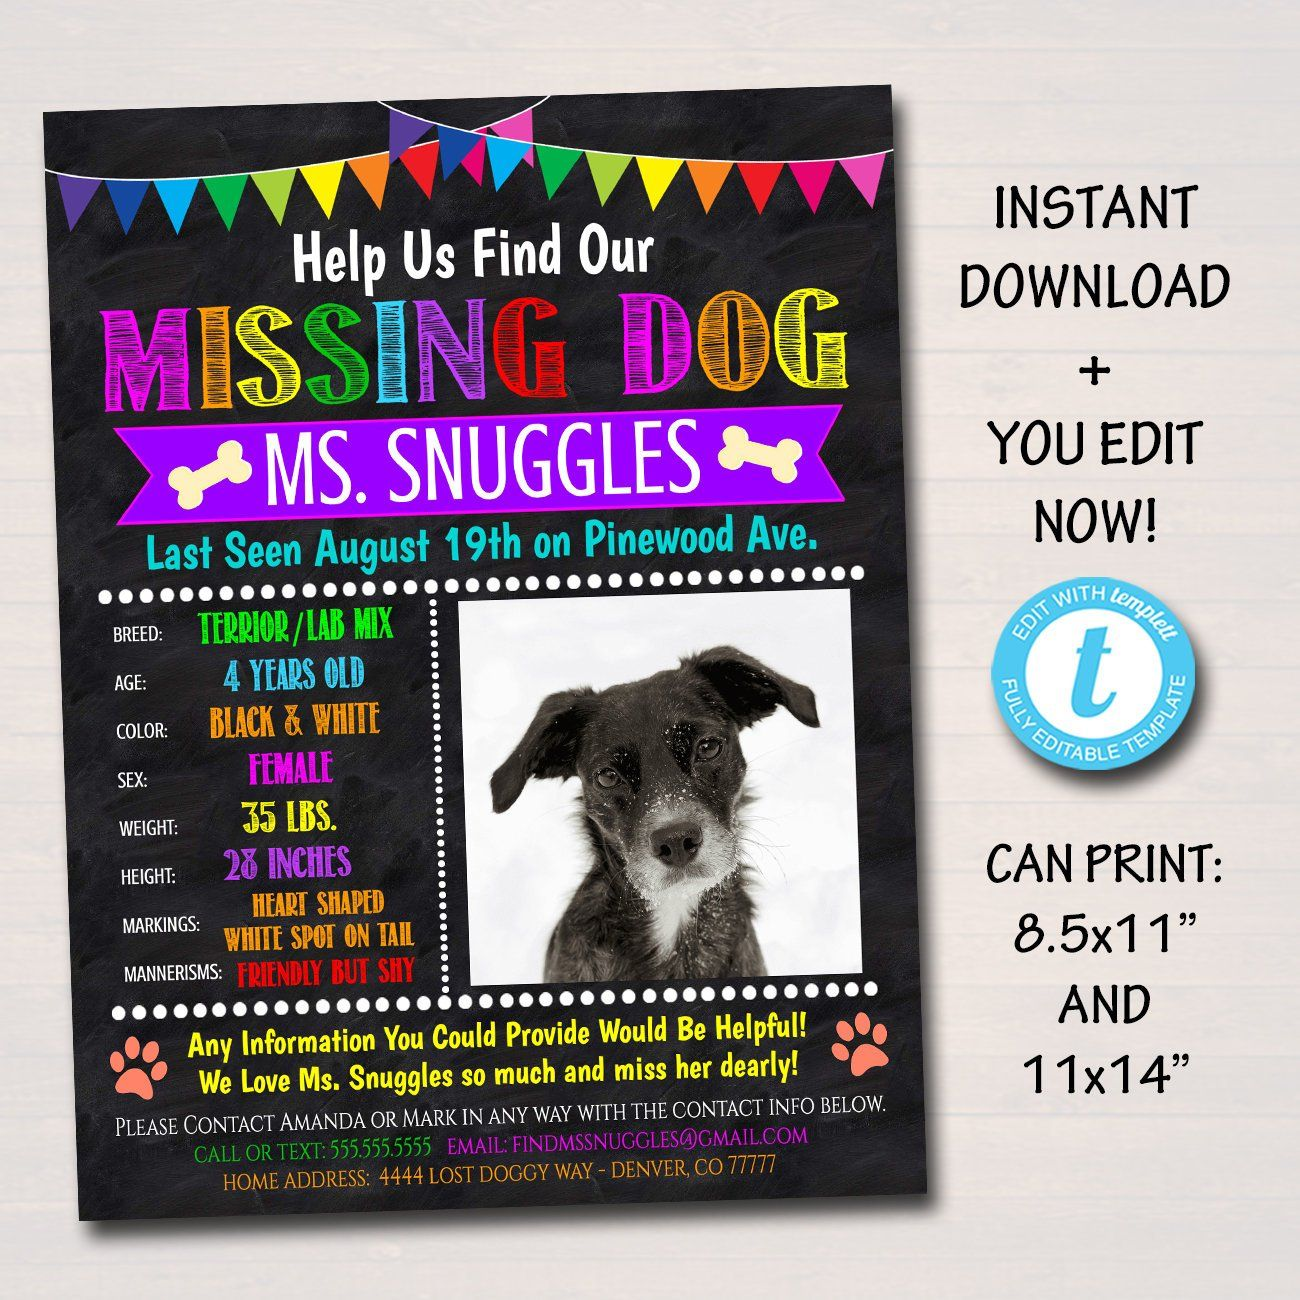 Editable Missing Dog Flyer And Poster Template Printable Lost Dog Pet Flyer Instant Download Colorful Bright Atten Poster Template Losing A Dog Losing A Pet Lost and found poster template